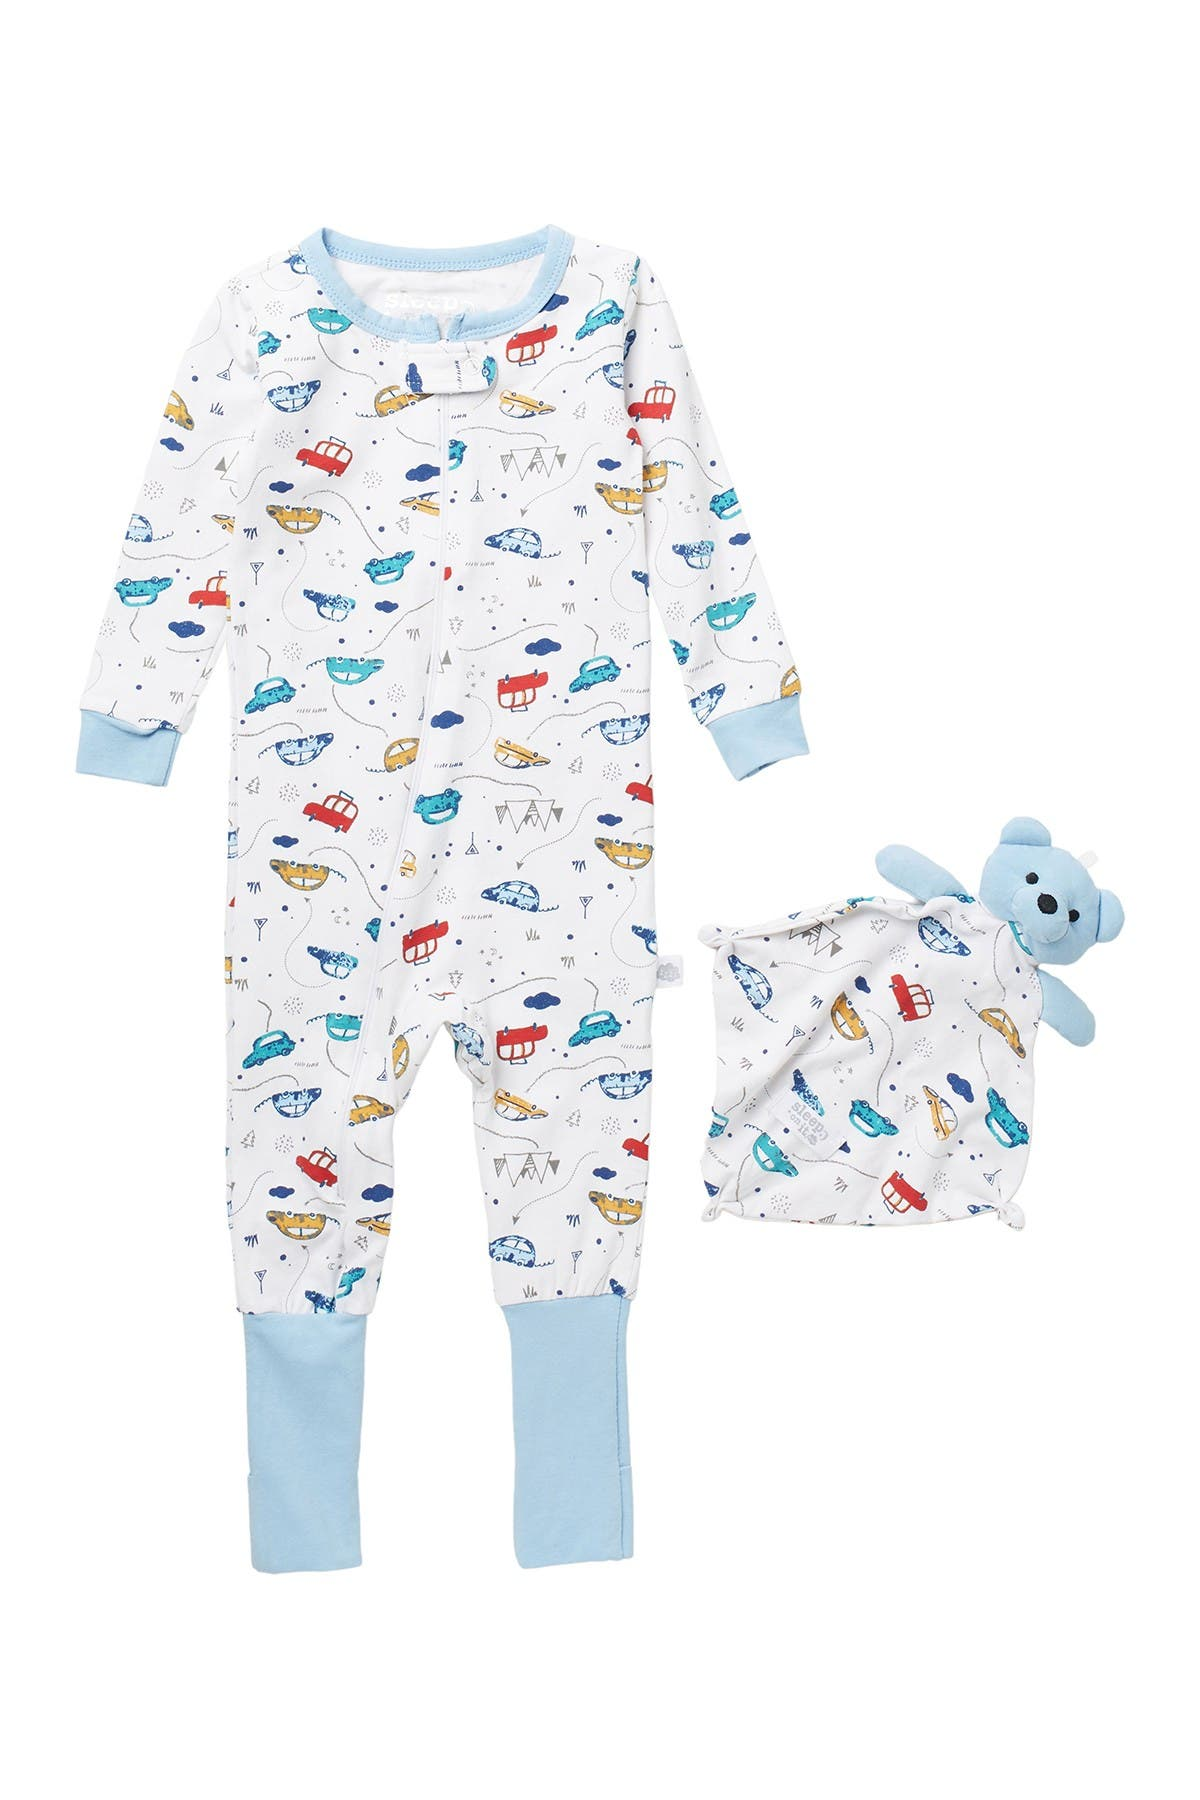 Image of CLOUD NINE Coverall Pajamas with Blankey